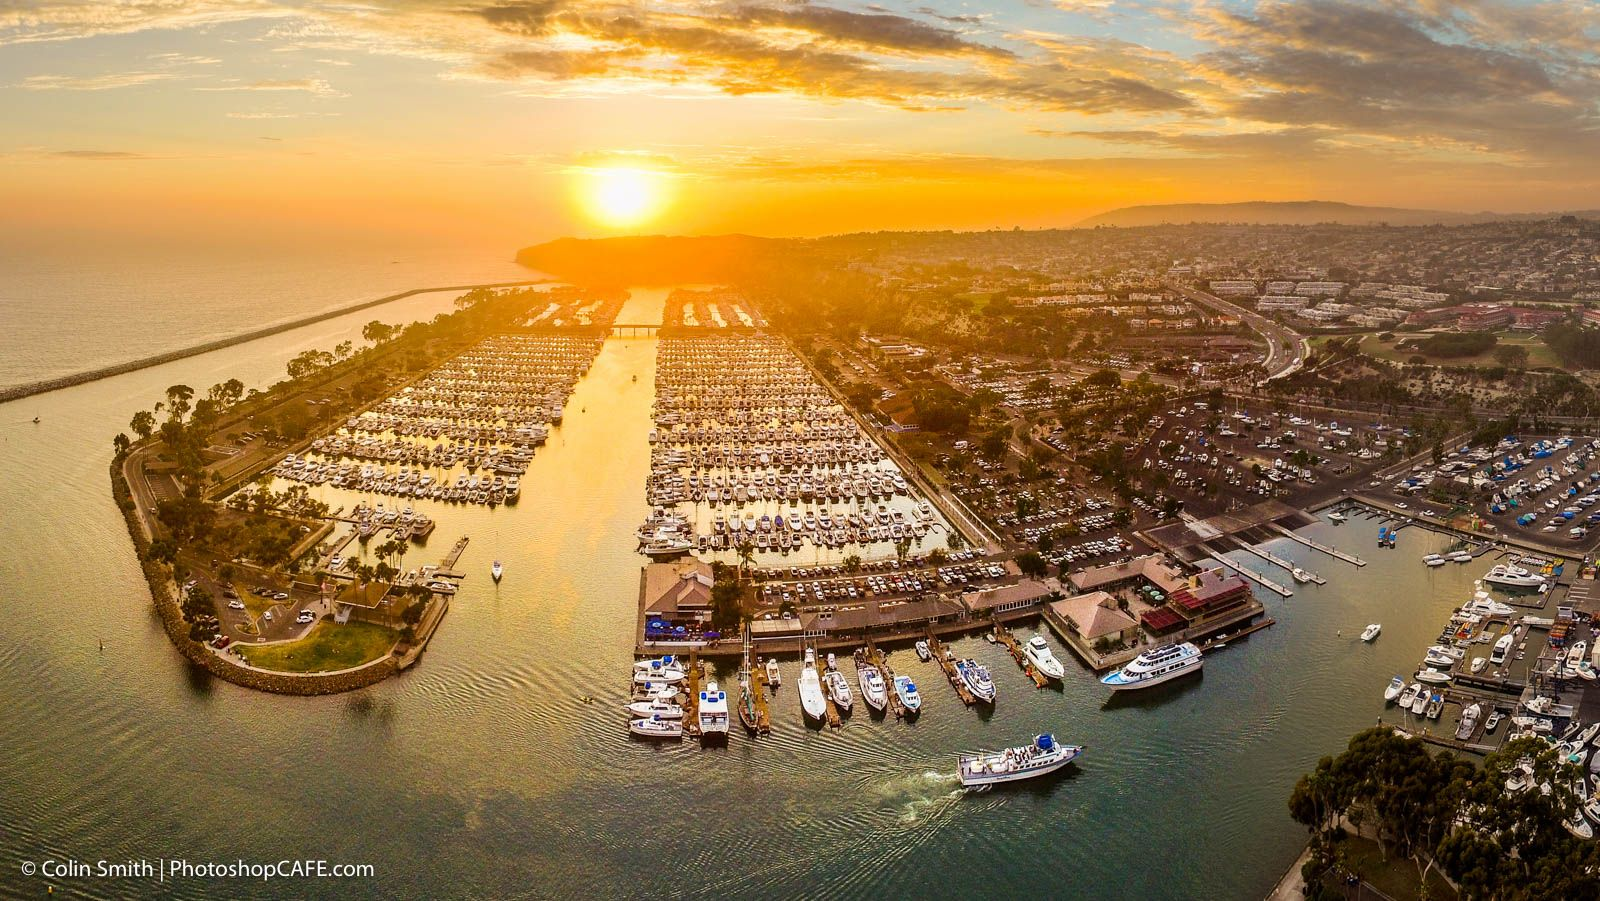 Aerial Drone Photography by Colin Smith of PhotoshopCAFE.com